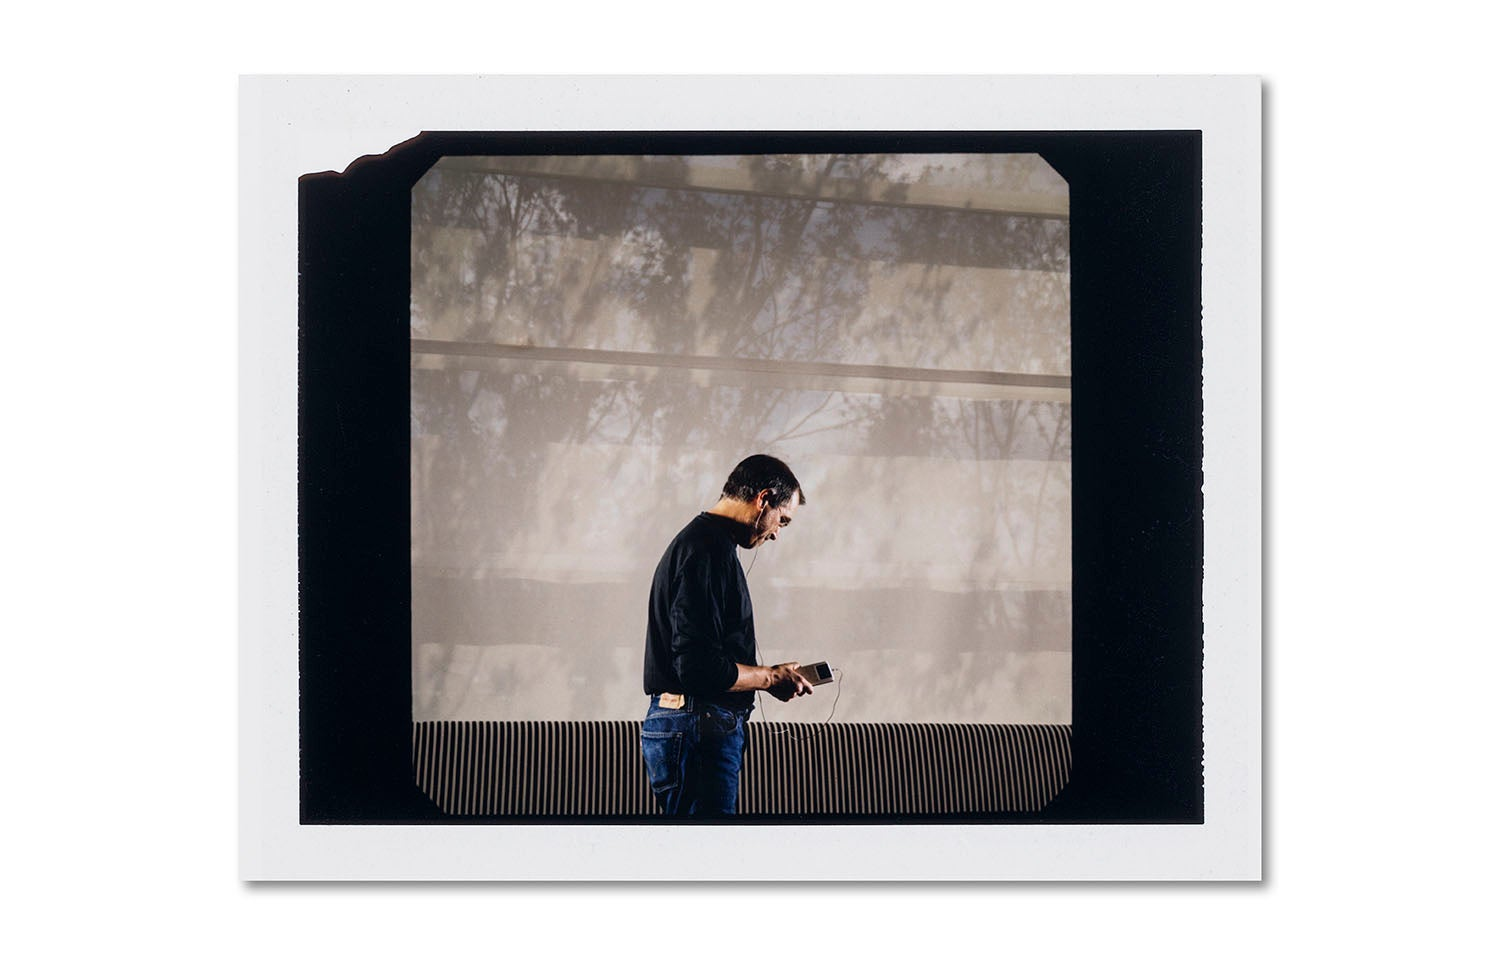 Steve Jobs Polaroid, Contemporary, Portrait, Photography, Celebrity